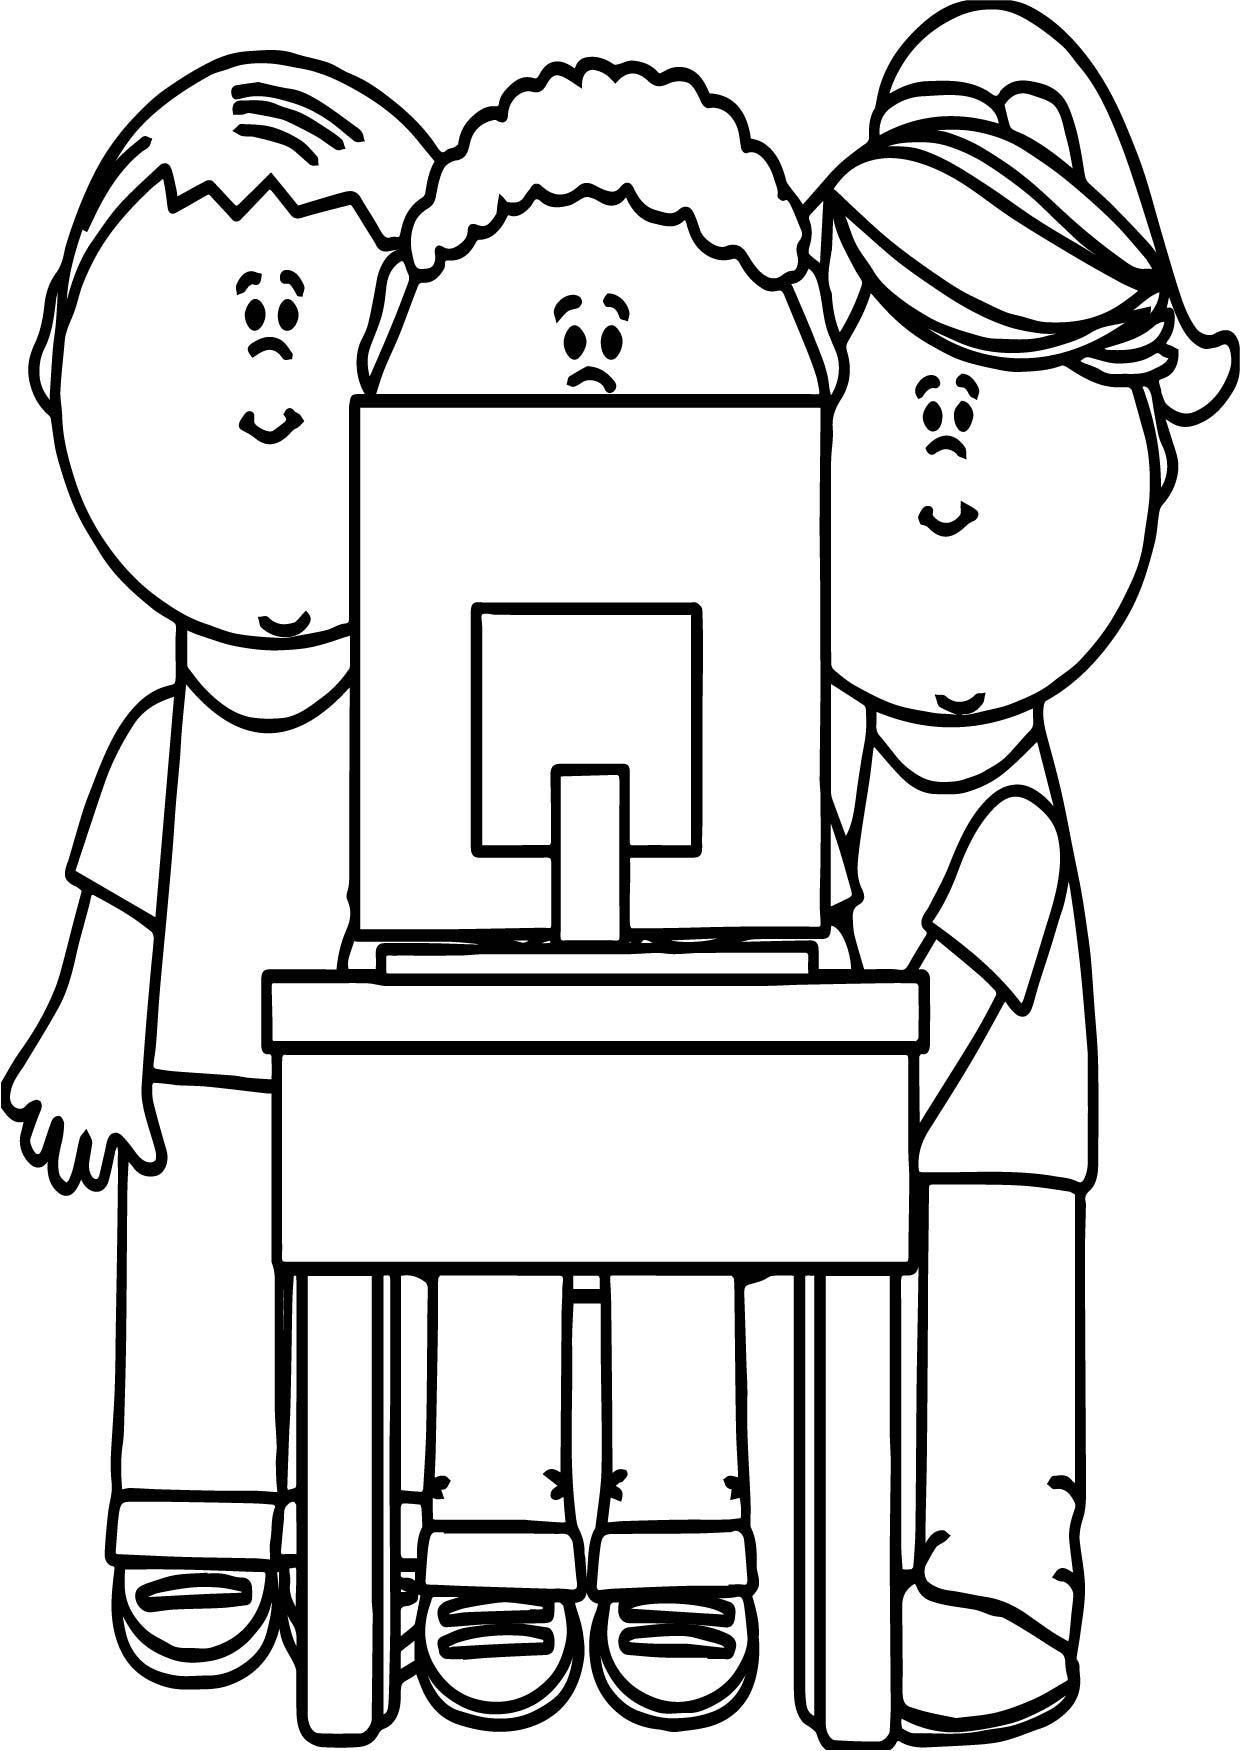 Games On The Computer Coloring Pages